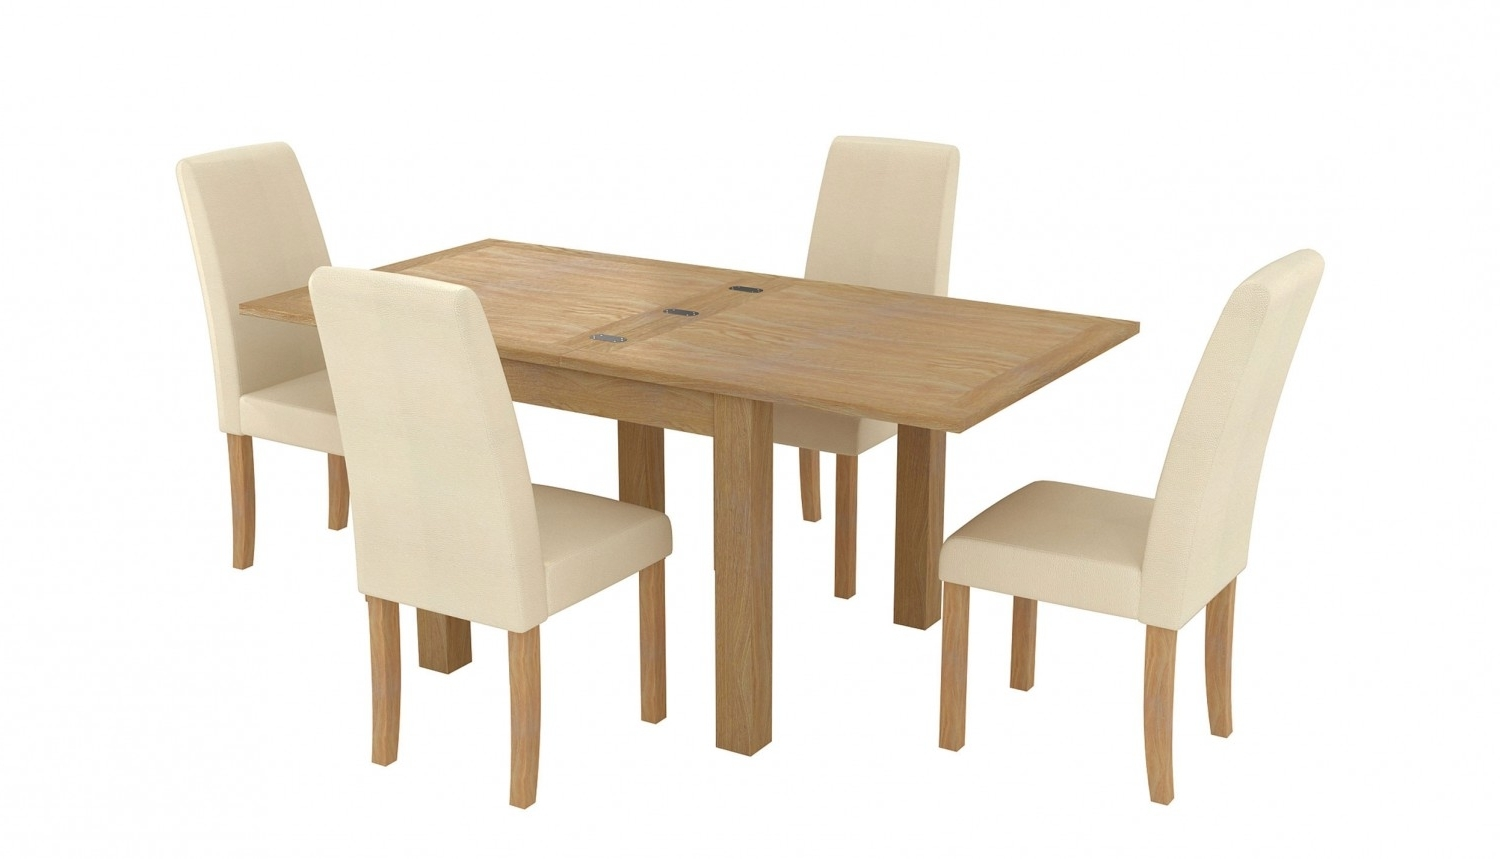 Aspen 900 1800 Flip Top Table & 4 Baltimore Chairs In Most Current Flip Top Oak Dining Tables (View 20 of 25)